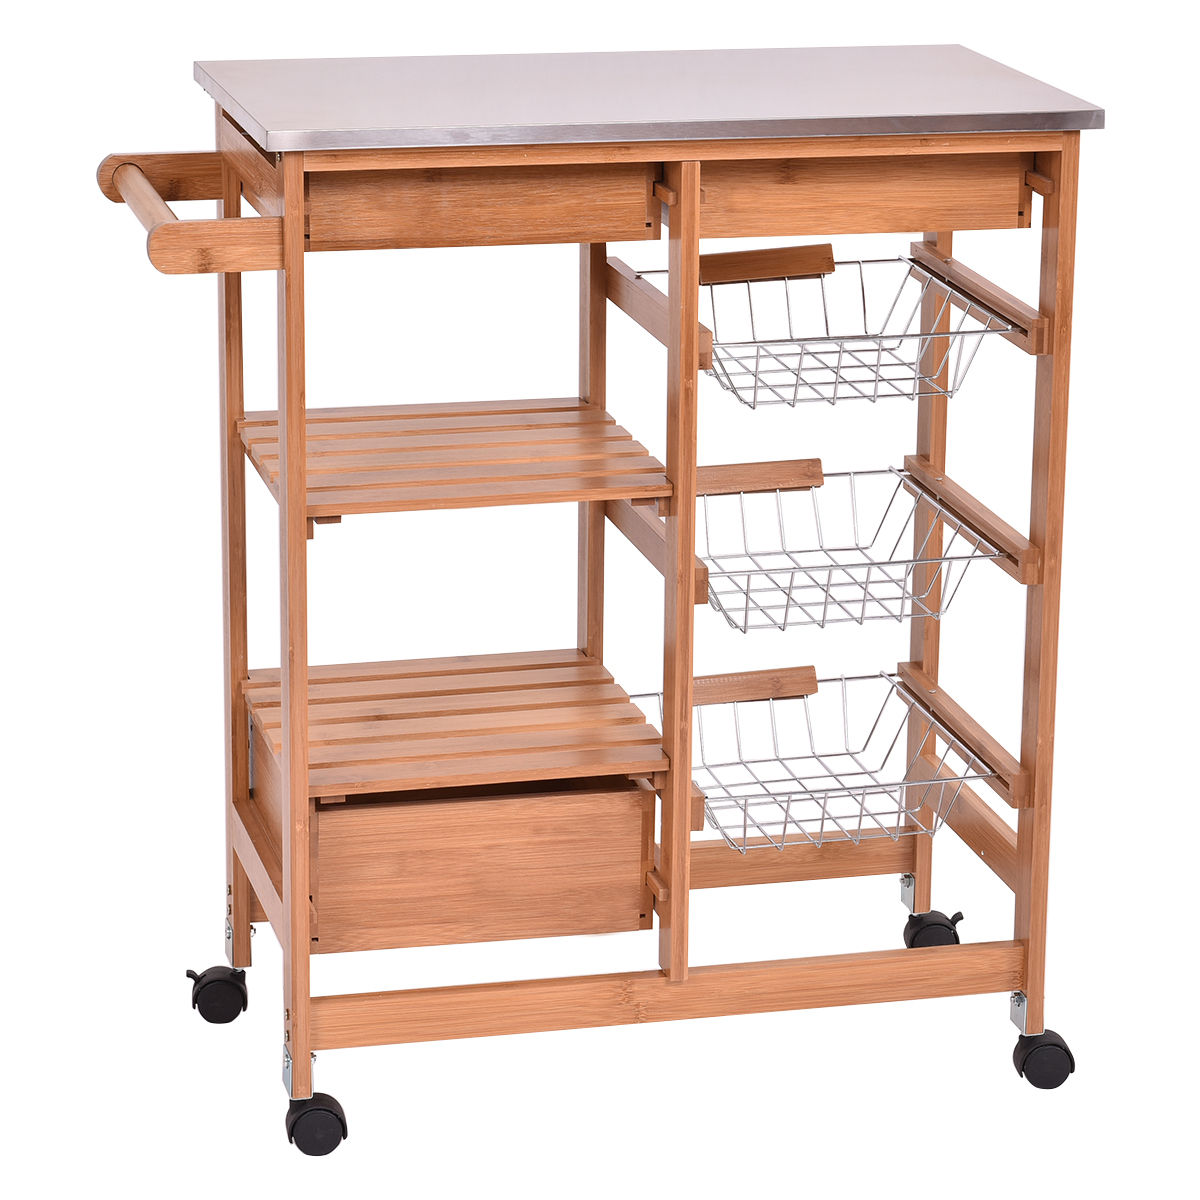 Gymax Bamboo Rolling Kitchen Island Trolley Cart Storage Shelf Drawers